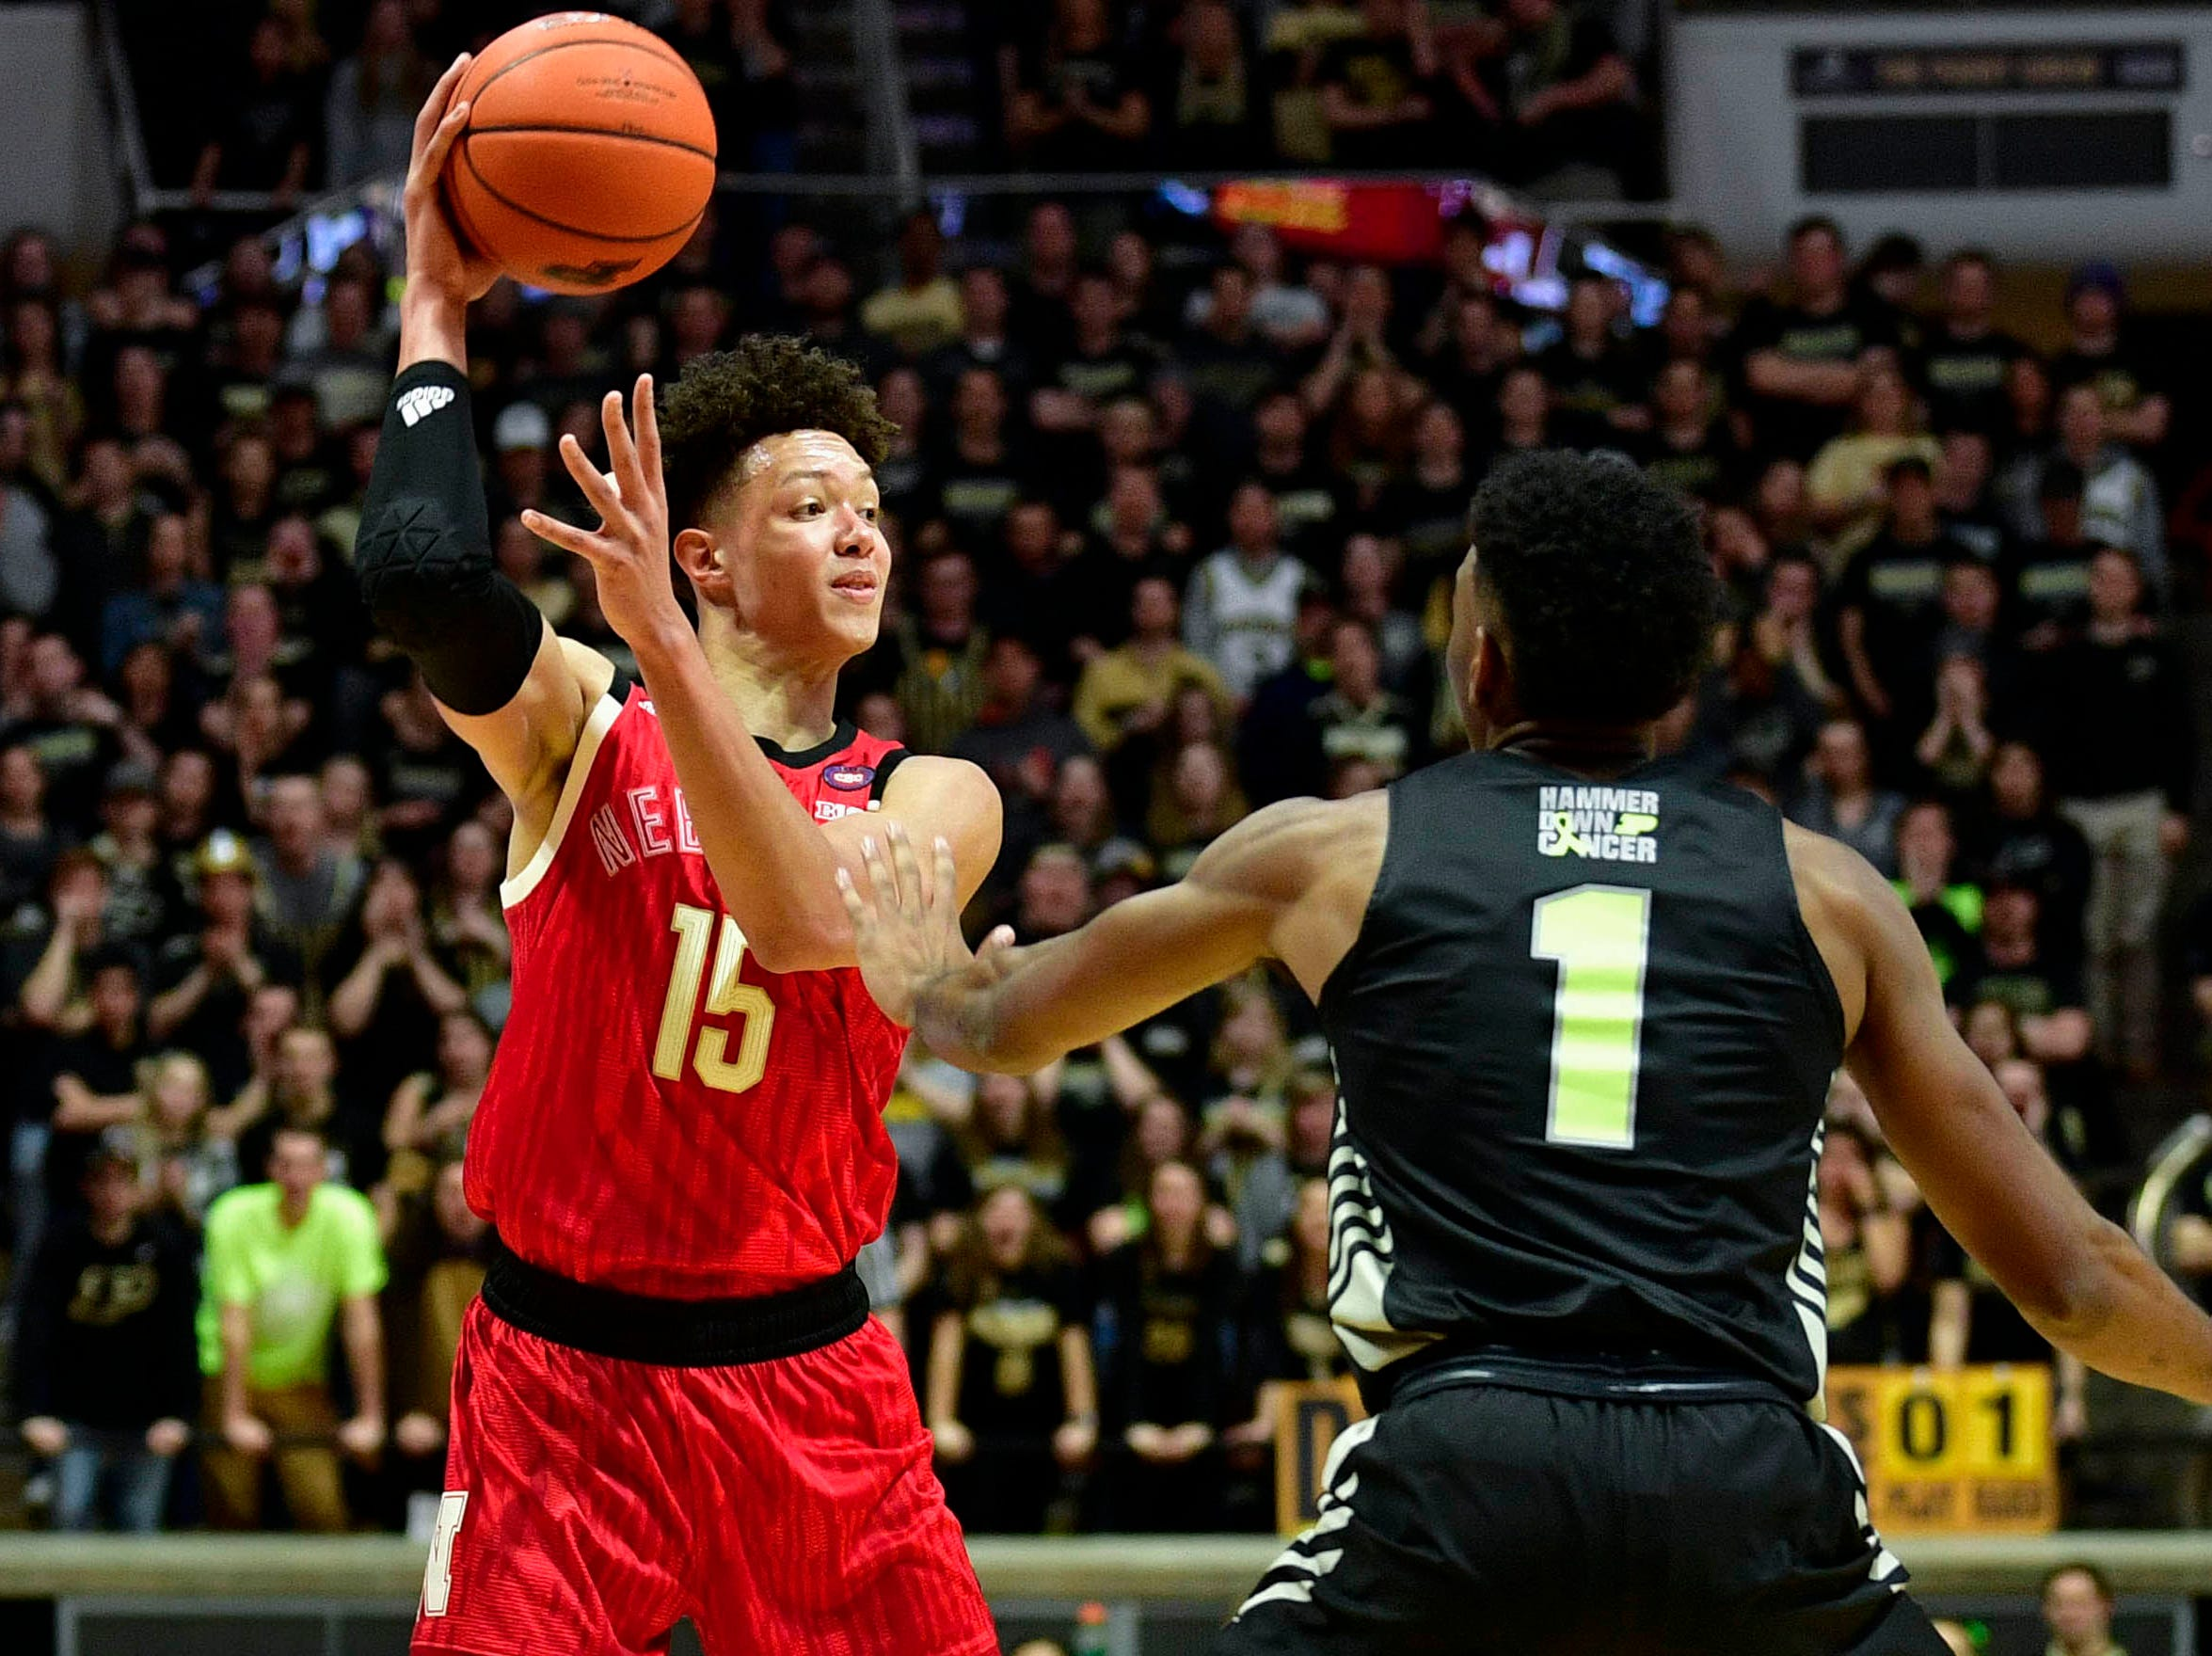 Nebraska Cornhuskers forward Isaiah Roby (15) looks for a teammate past Purdue Boilermakers forward Aaron Wheeler (1) during the first half of the game at Mackey Arena.